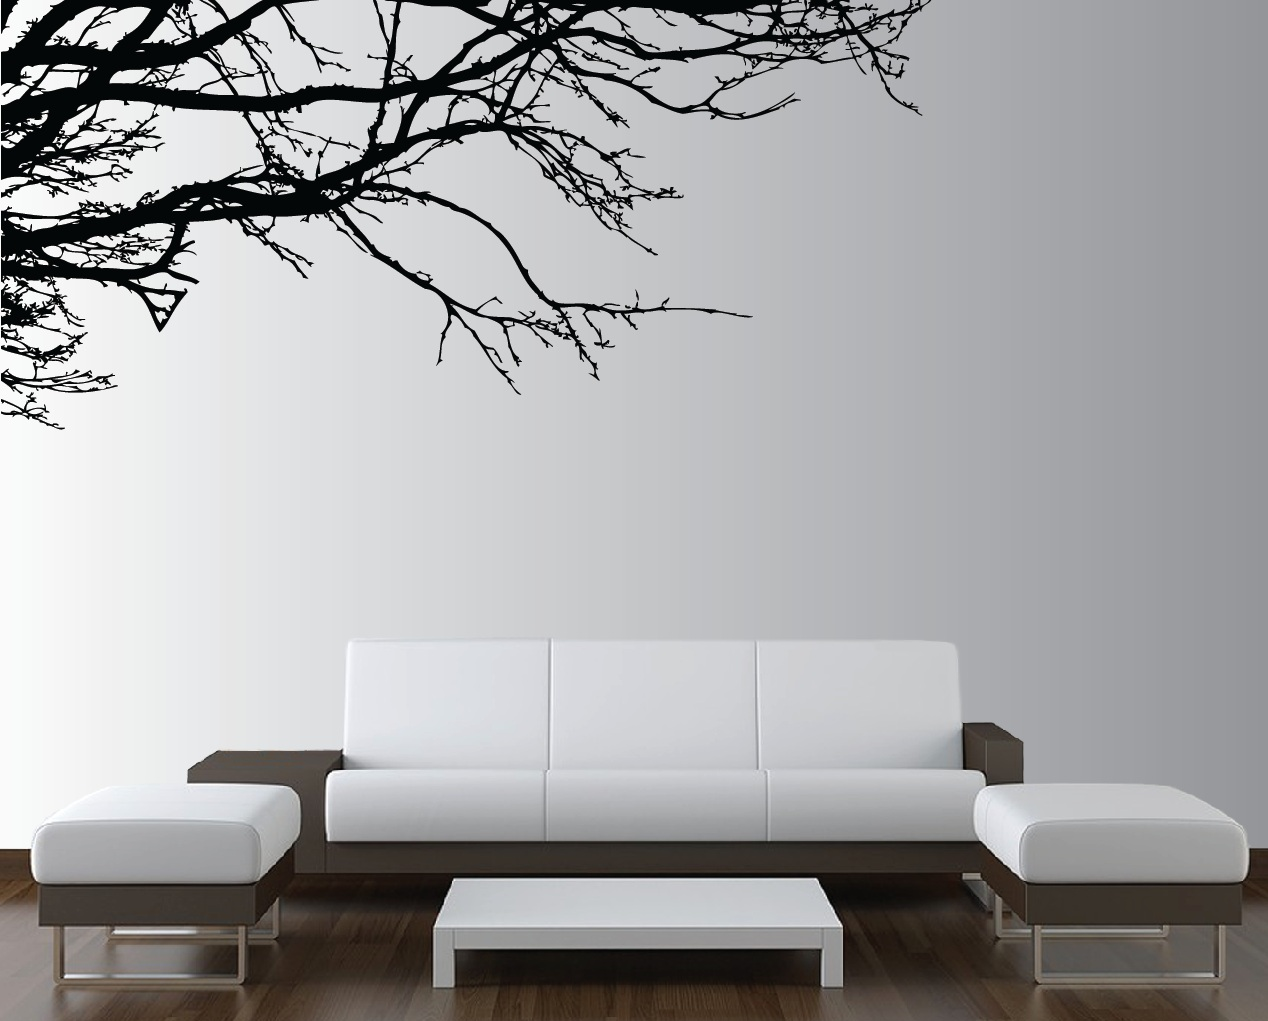 Magnificent Living Room Wall Of Full Size Of Peel And Stick Decals